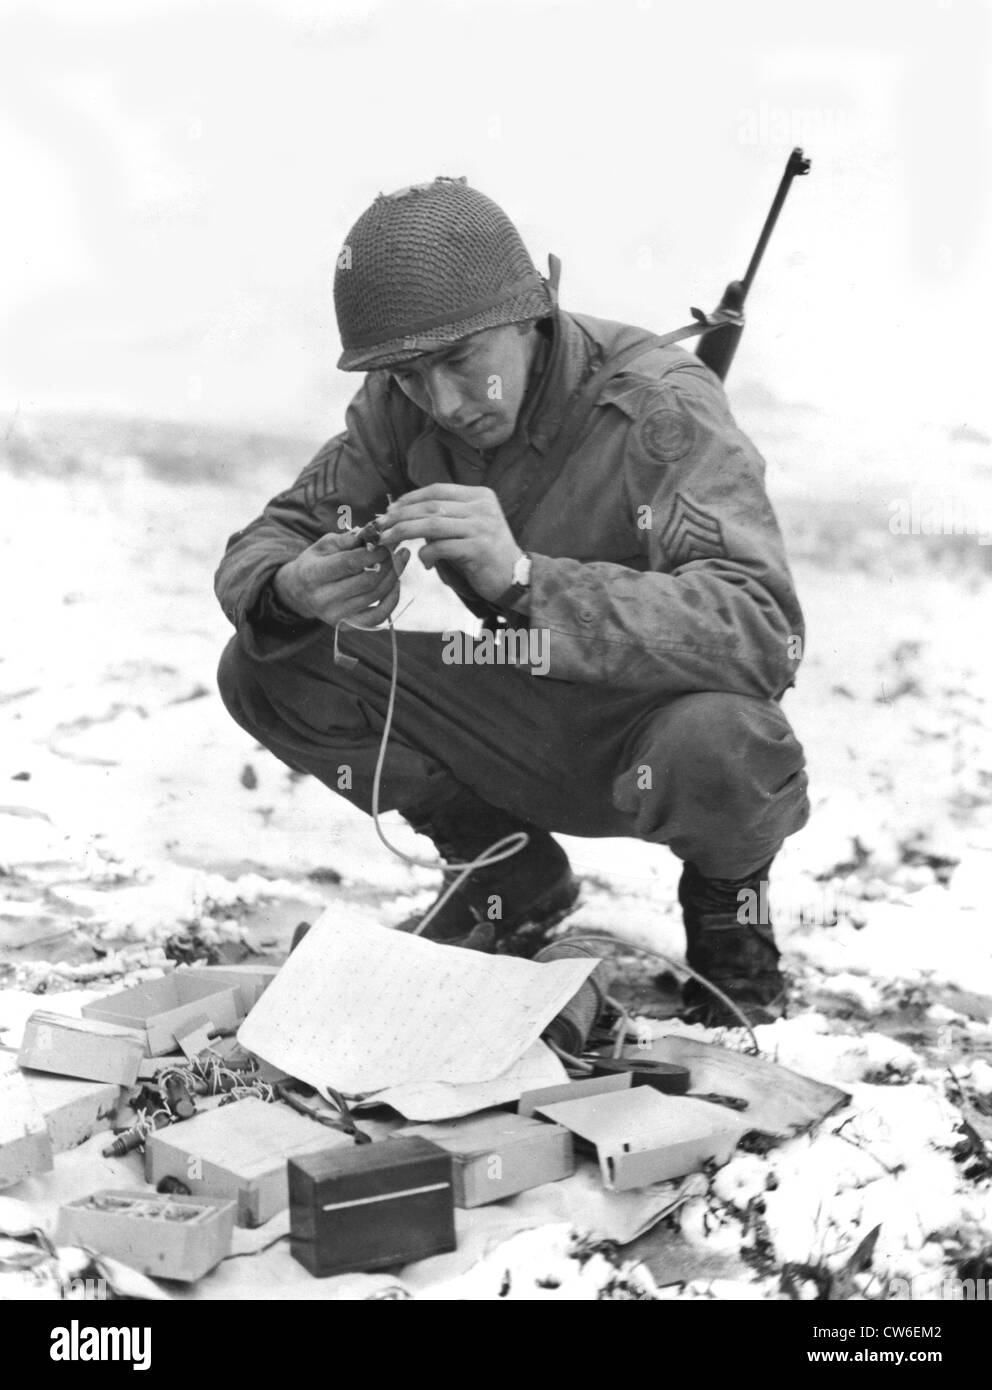 Bobby traps in Germany, January 4, 1945 - Stock Image